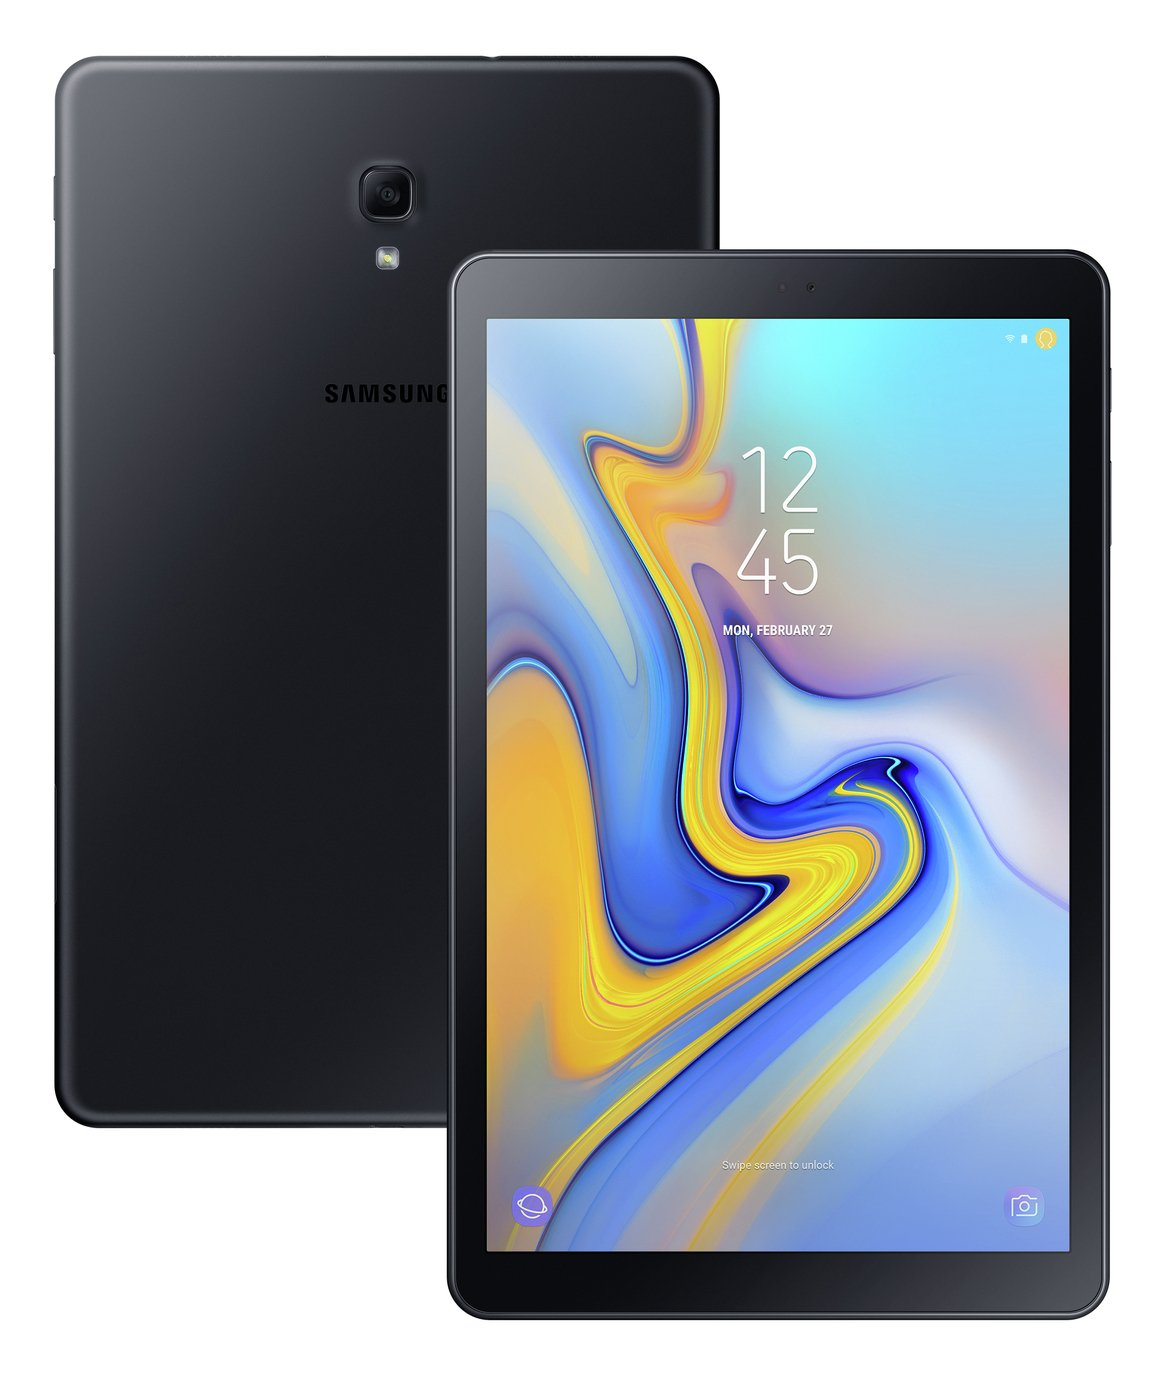 Samsung Galaxy Tab A 10.5 Inch 32GB LTE Tablet - Black from Samsung